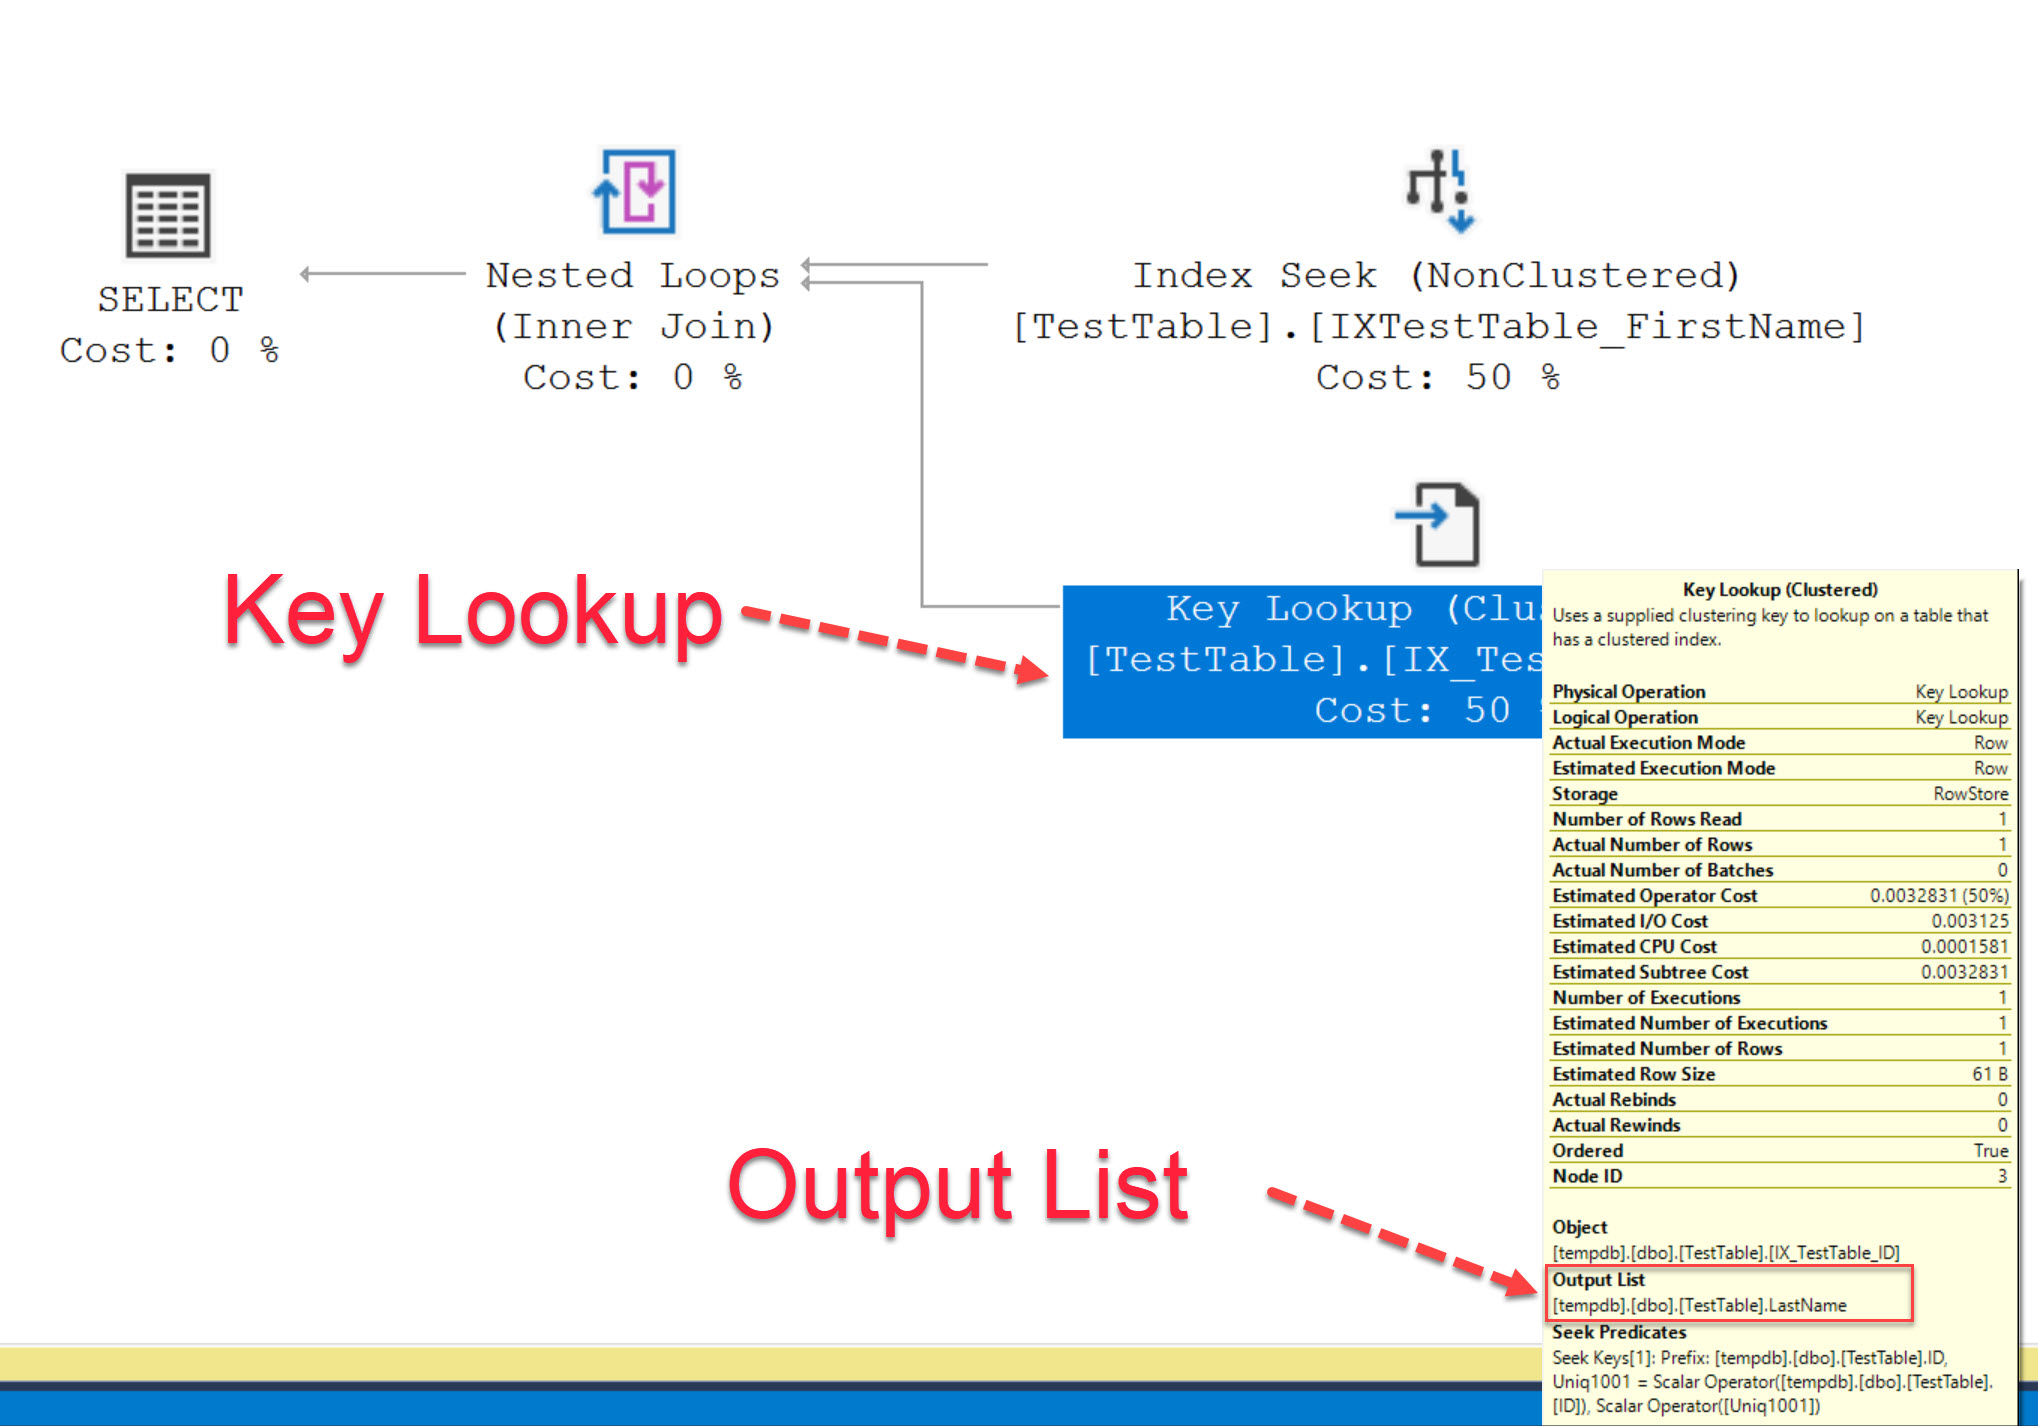 SQL SERVER - Optimize Key Lookup by Creating Index with Include Columns keylookup1